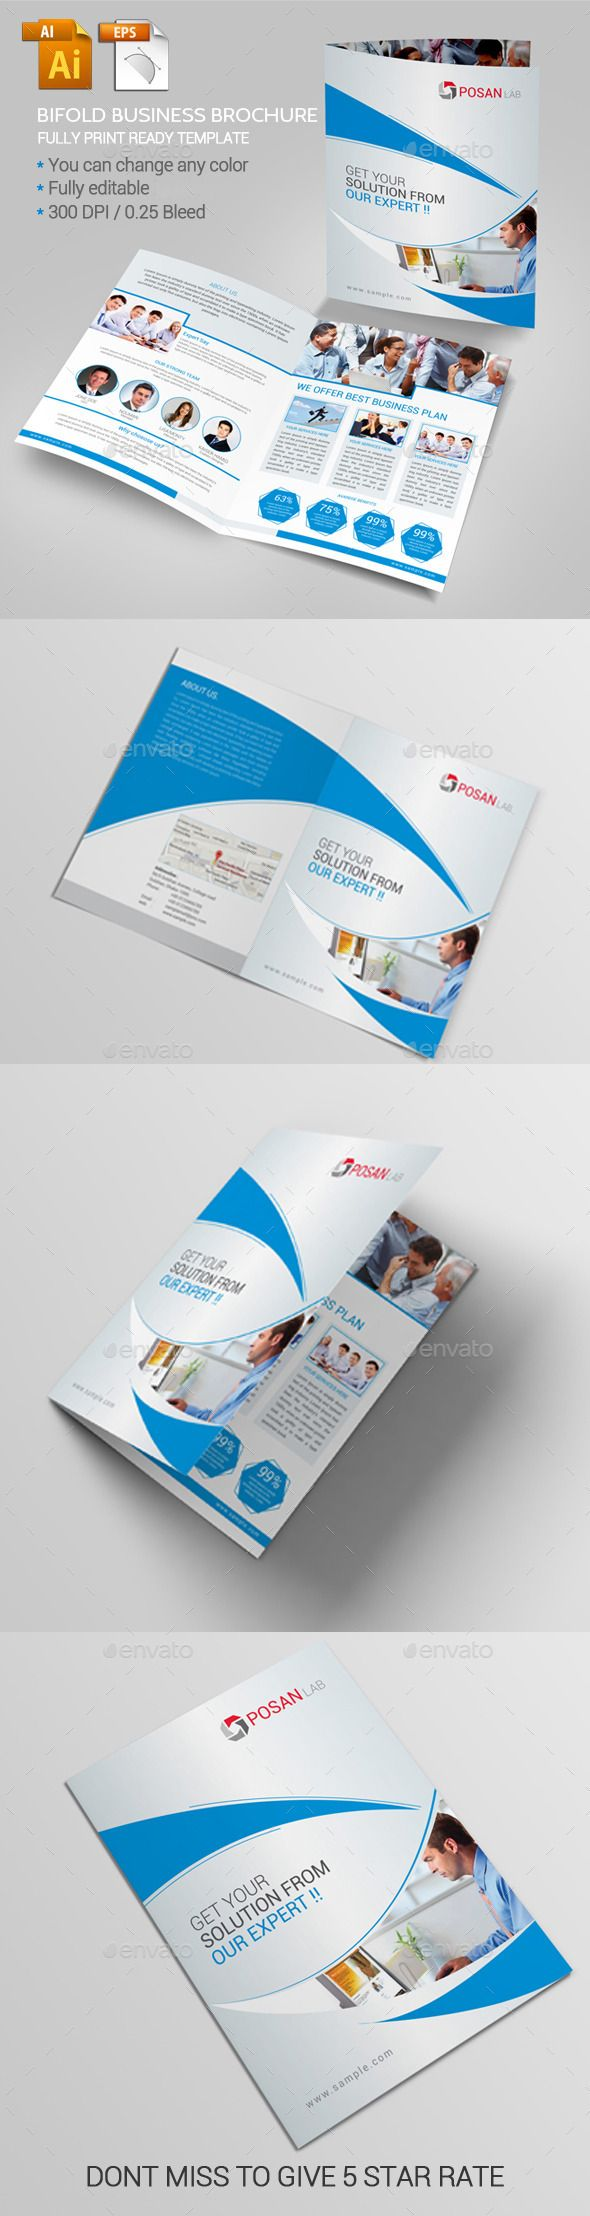 bifold business brochure design template brochure download httpgraphicrivernet